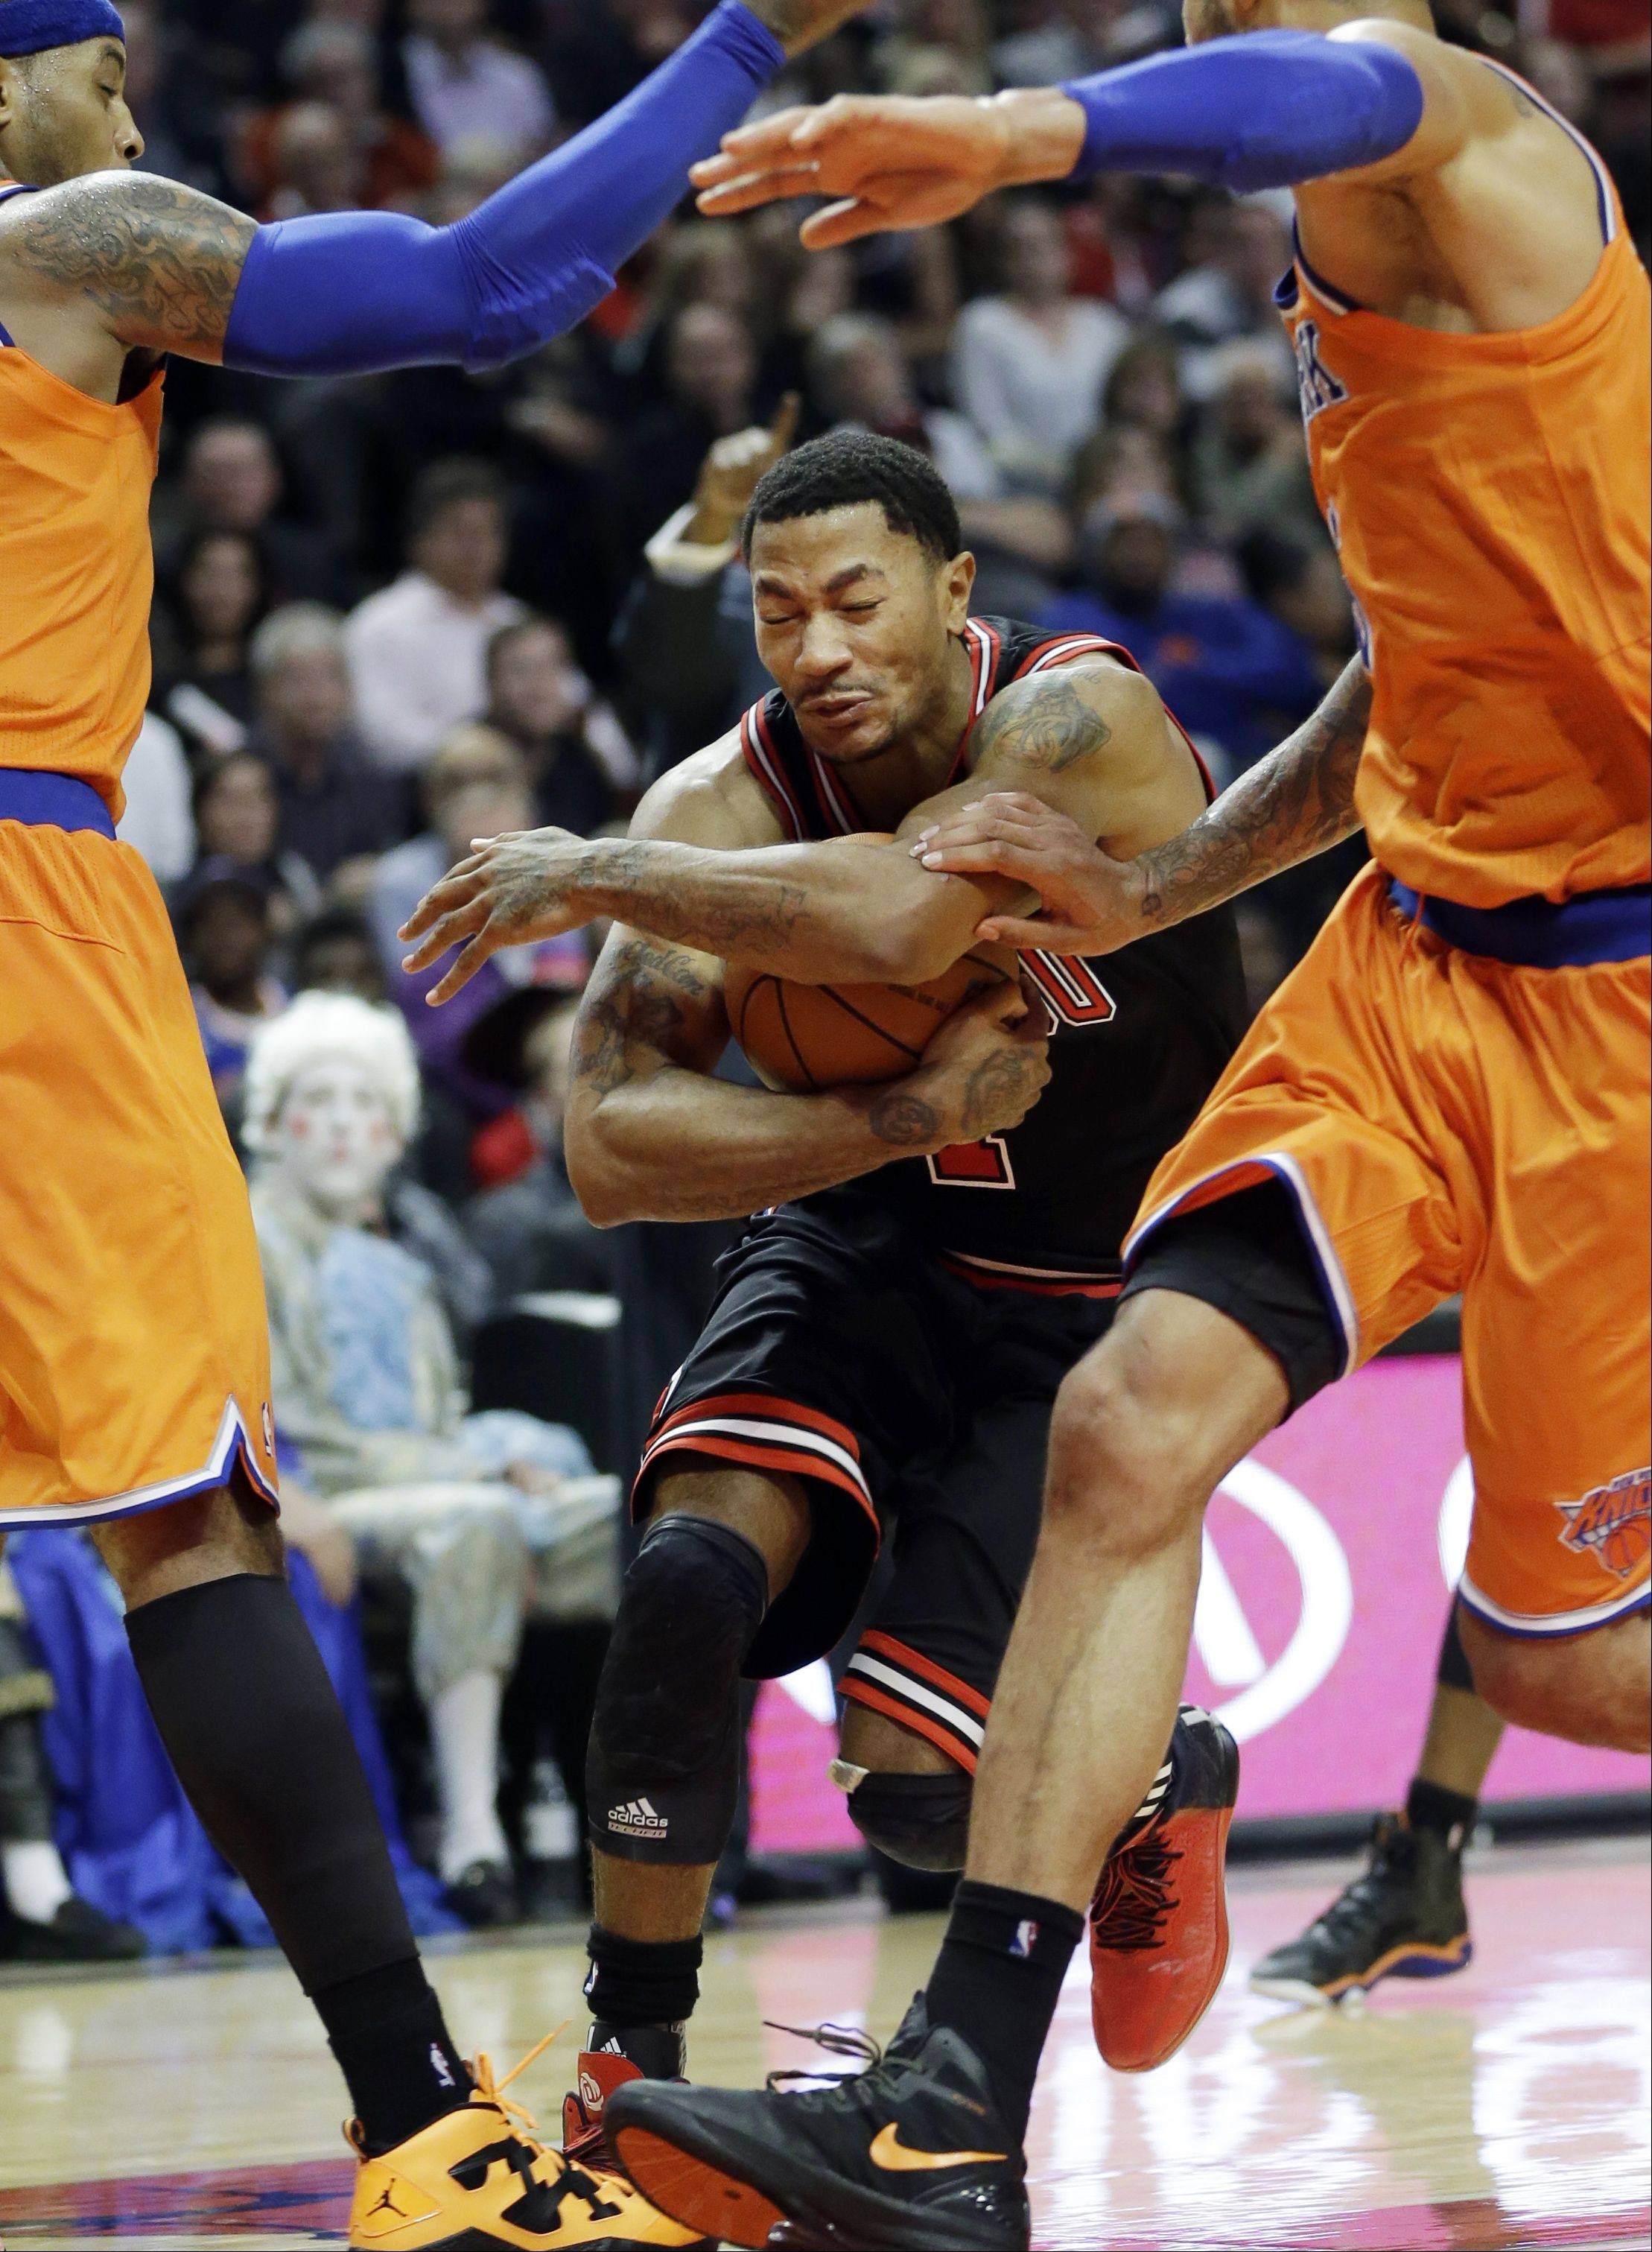 Chicago Bulls guard Derrick Rose, center, drives to the basket between New York Knicks forward Carmelo Anthony, left, and center Tyson Chandler during the second half.